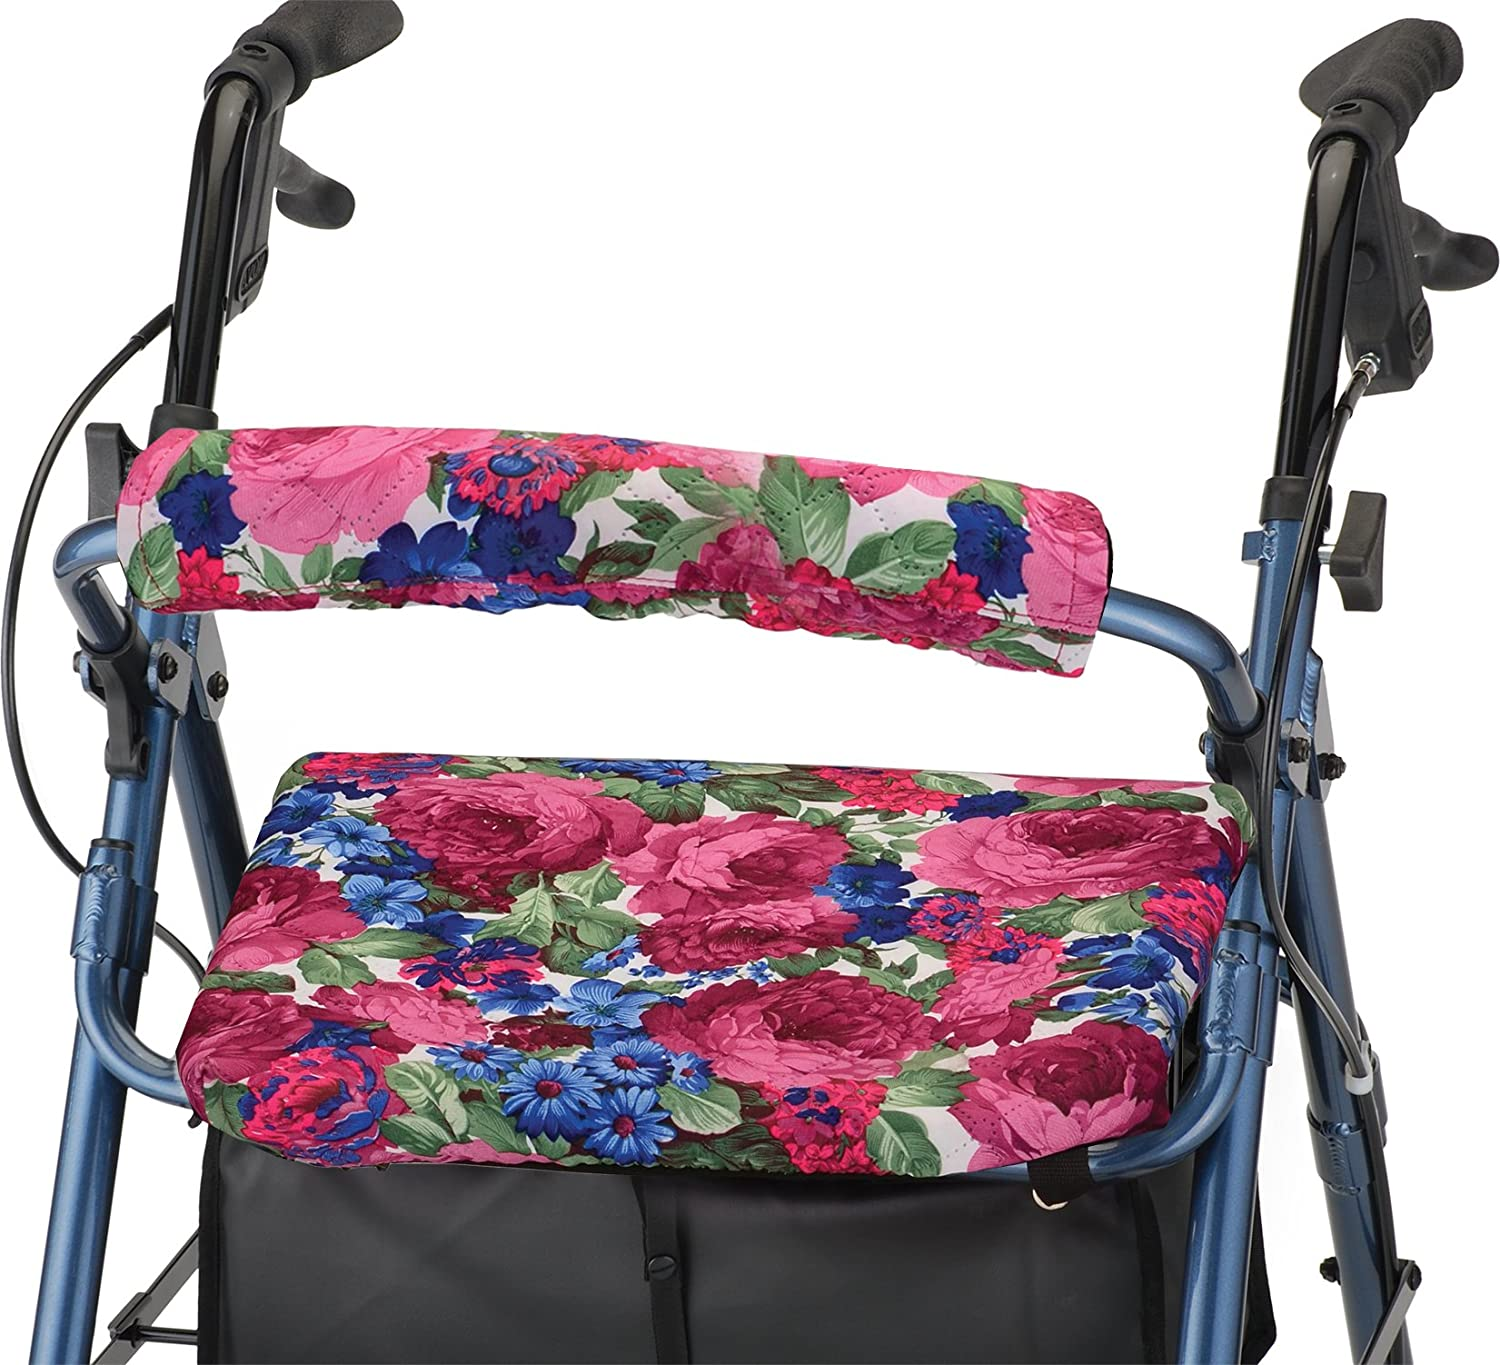 NOVA Outstanding Medical Products Be super welcome Rollator Walker Covers Backrest Seat Re